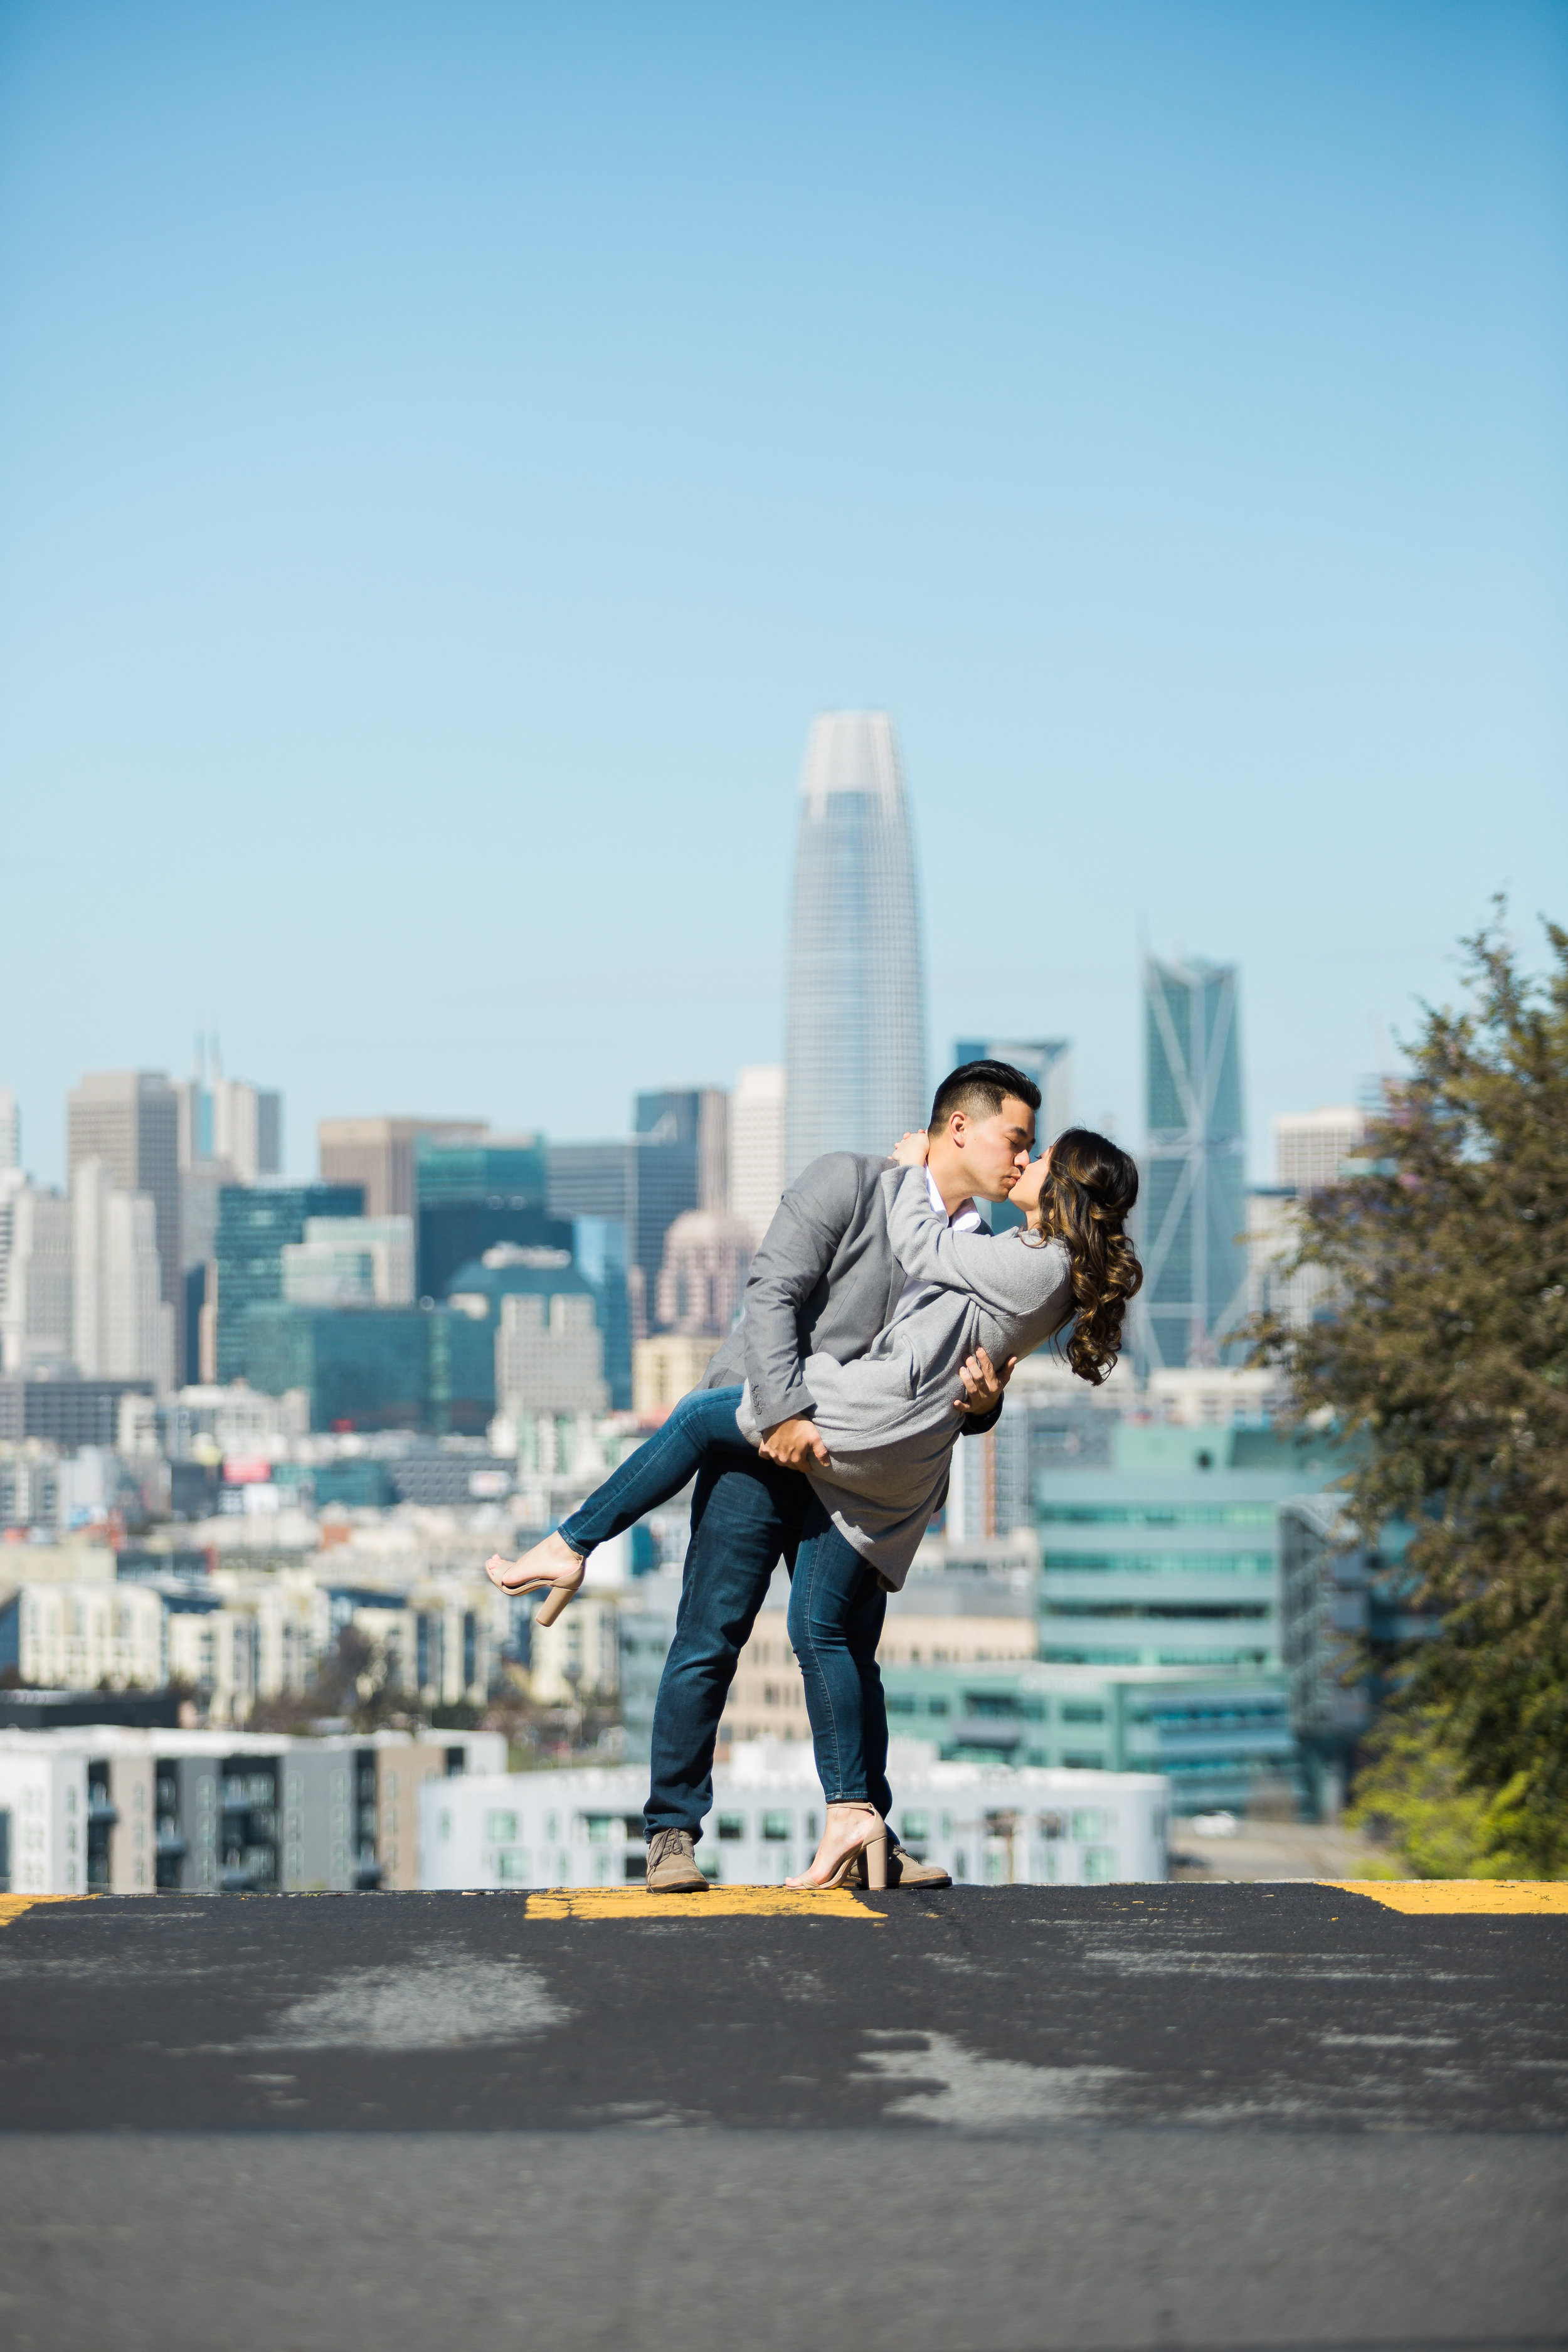 San-Francisco-Engagement-Session-Tara-Nichole-Photo-7.jpg